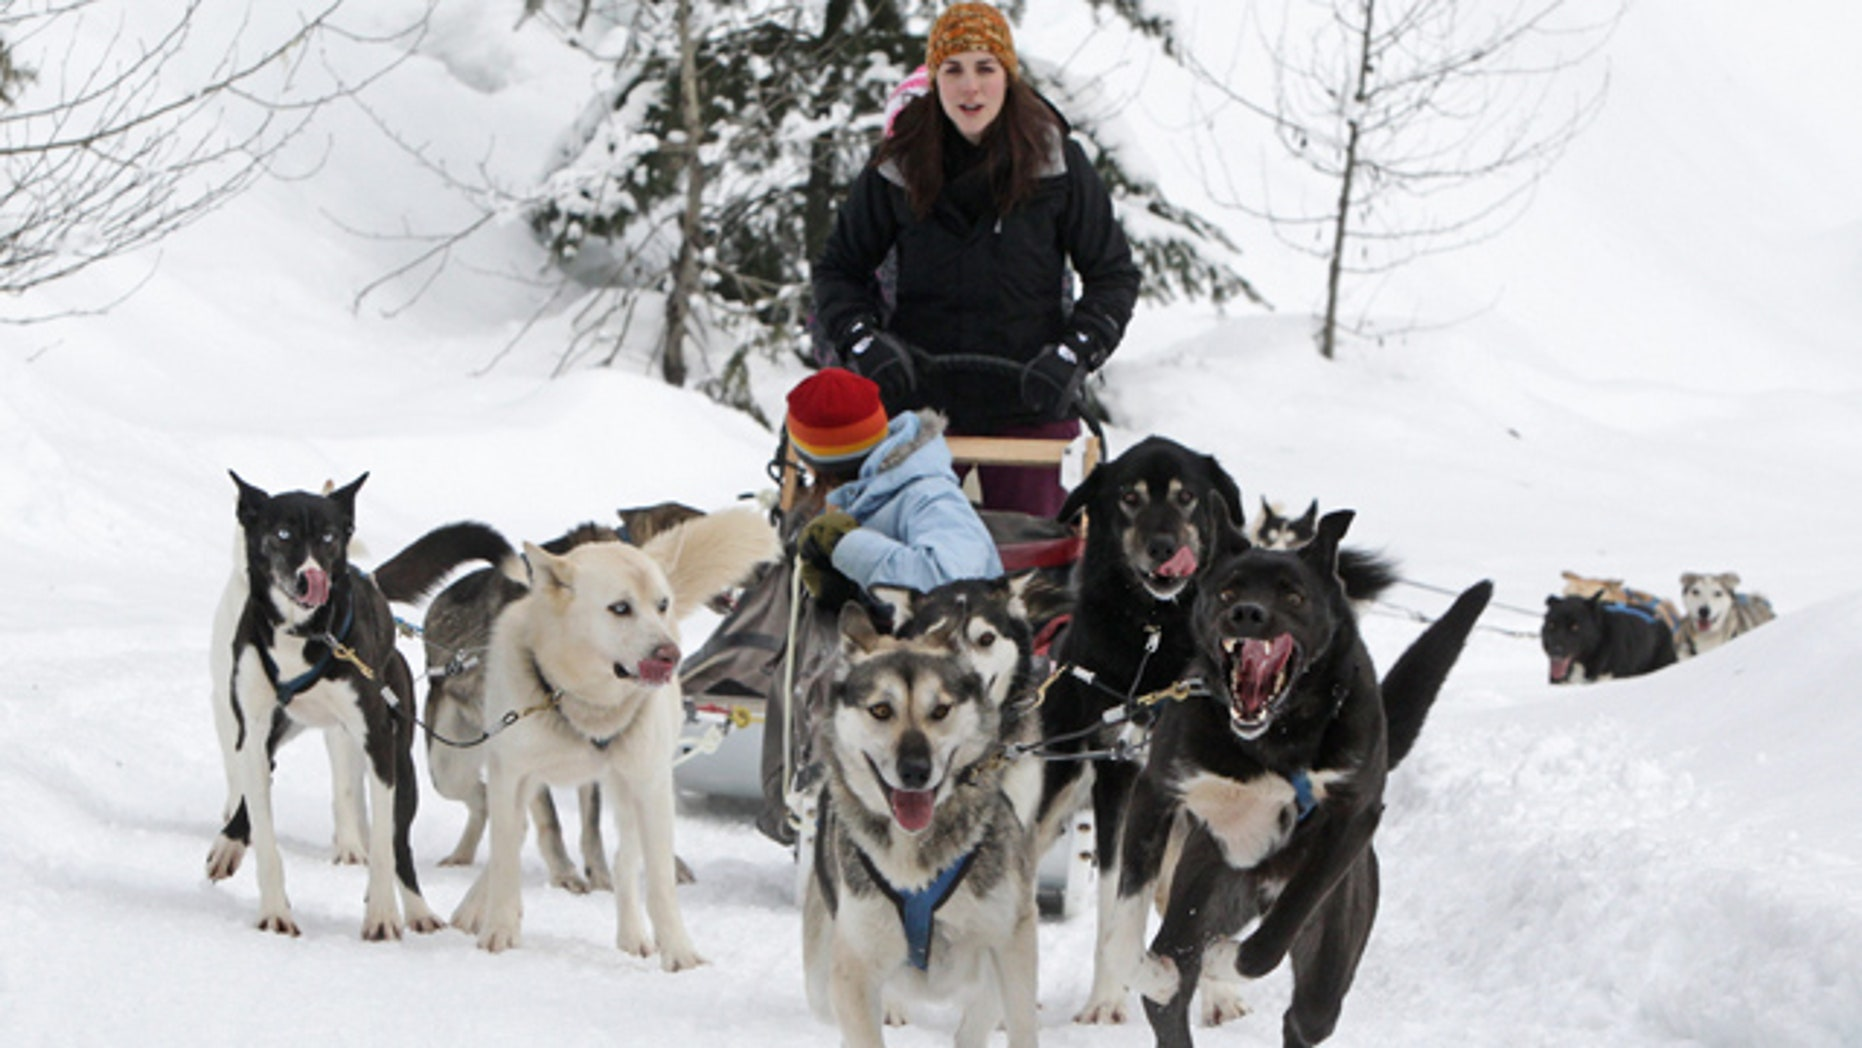 Jan. 31: Sled dogs pull tourists during a tour run by Outdoor Adventures in the Soo Valley north of Whistler, British Columbia, Canada.